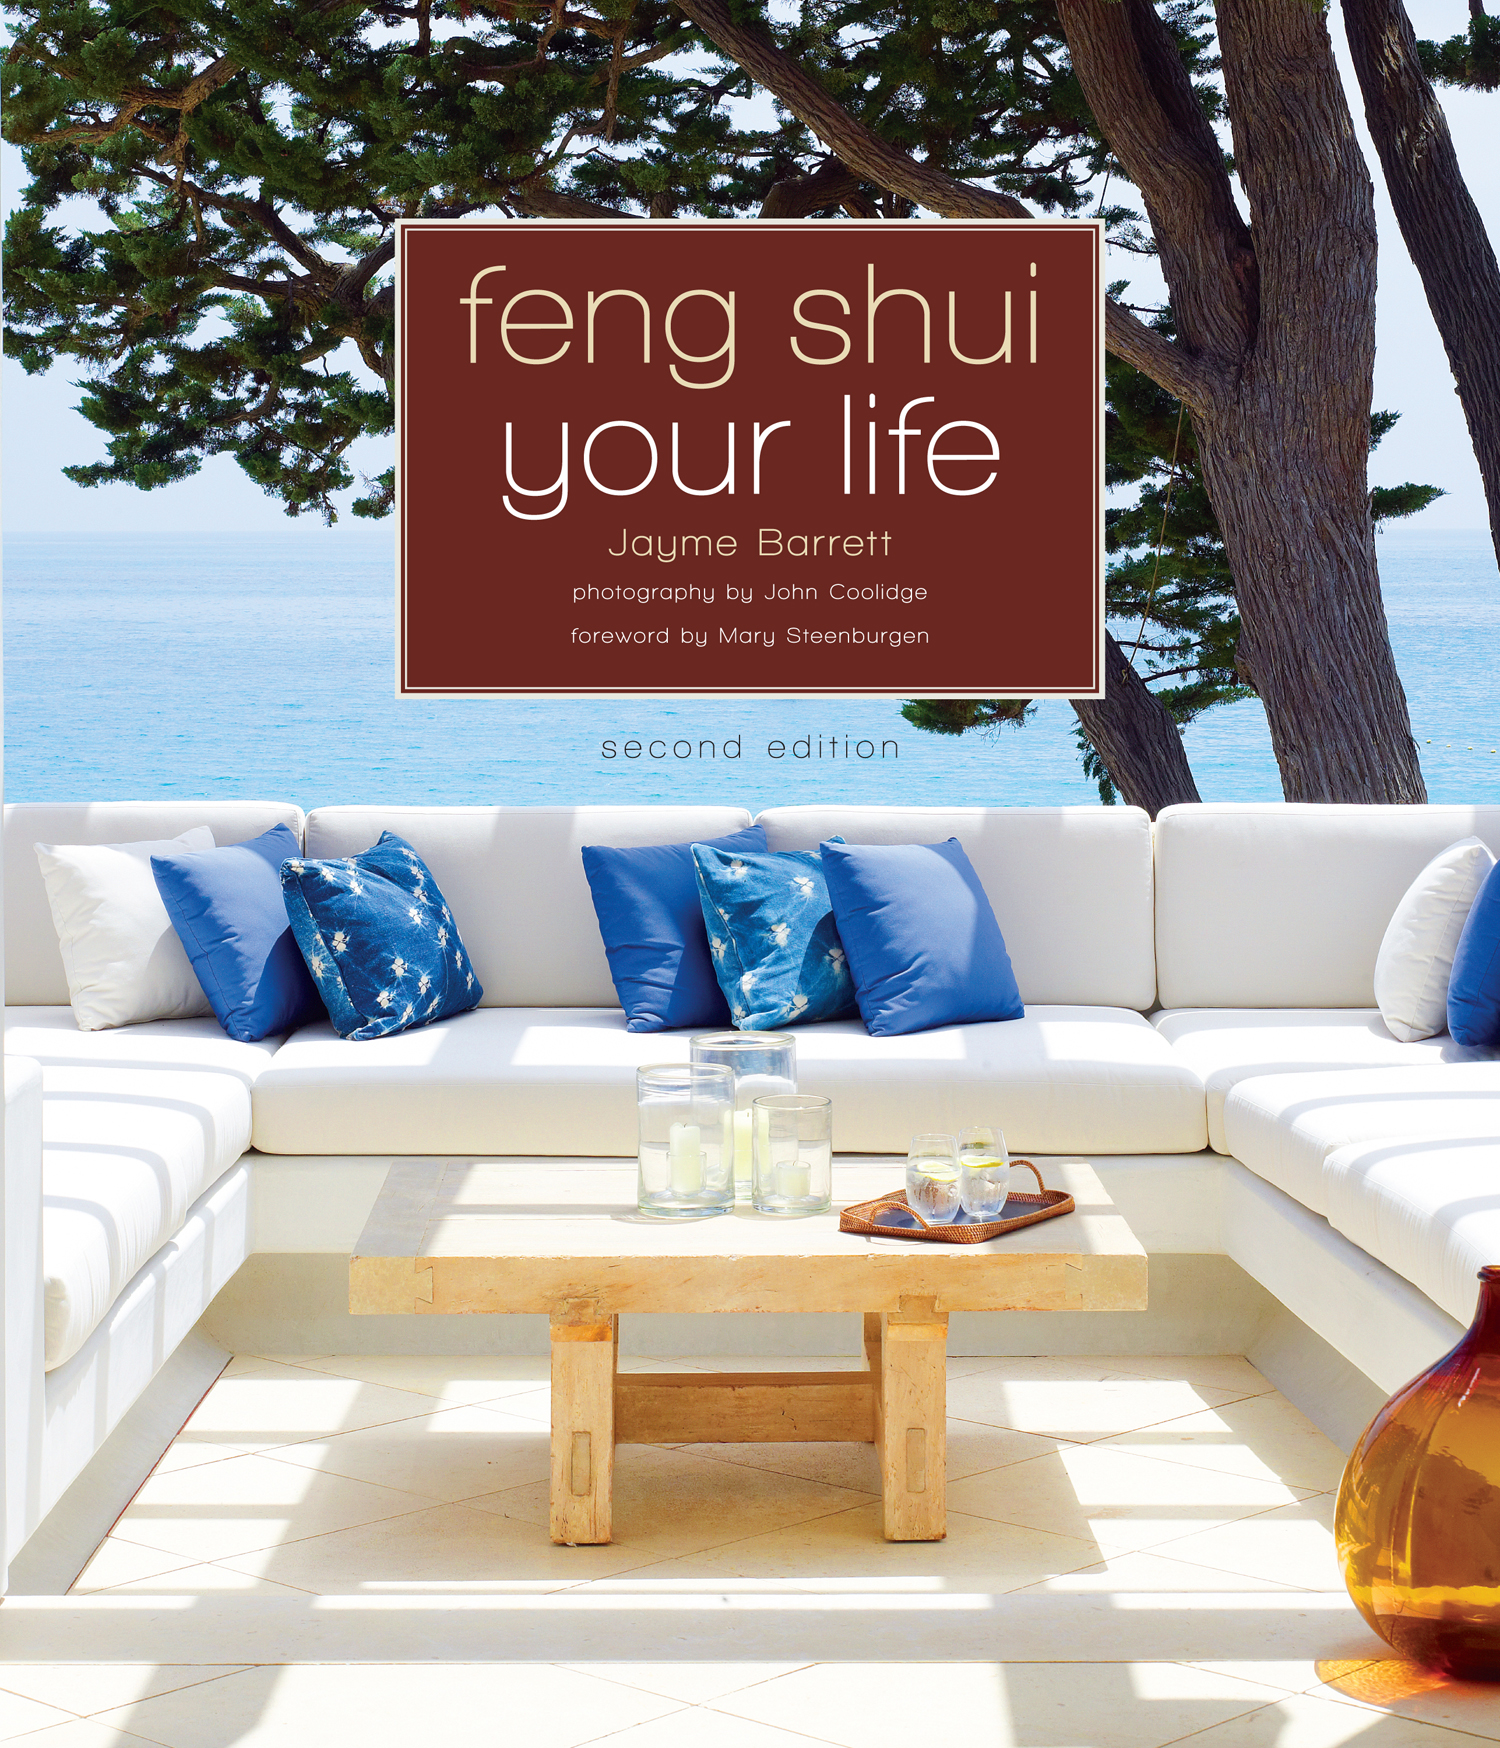 Feng Shui In Your Home Feng Shui Your Life Book  Zweena Body Care